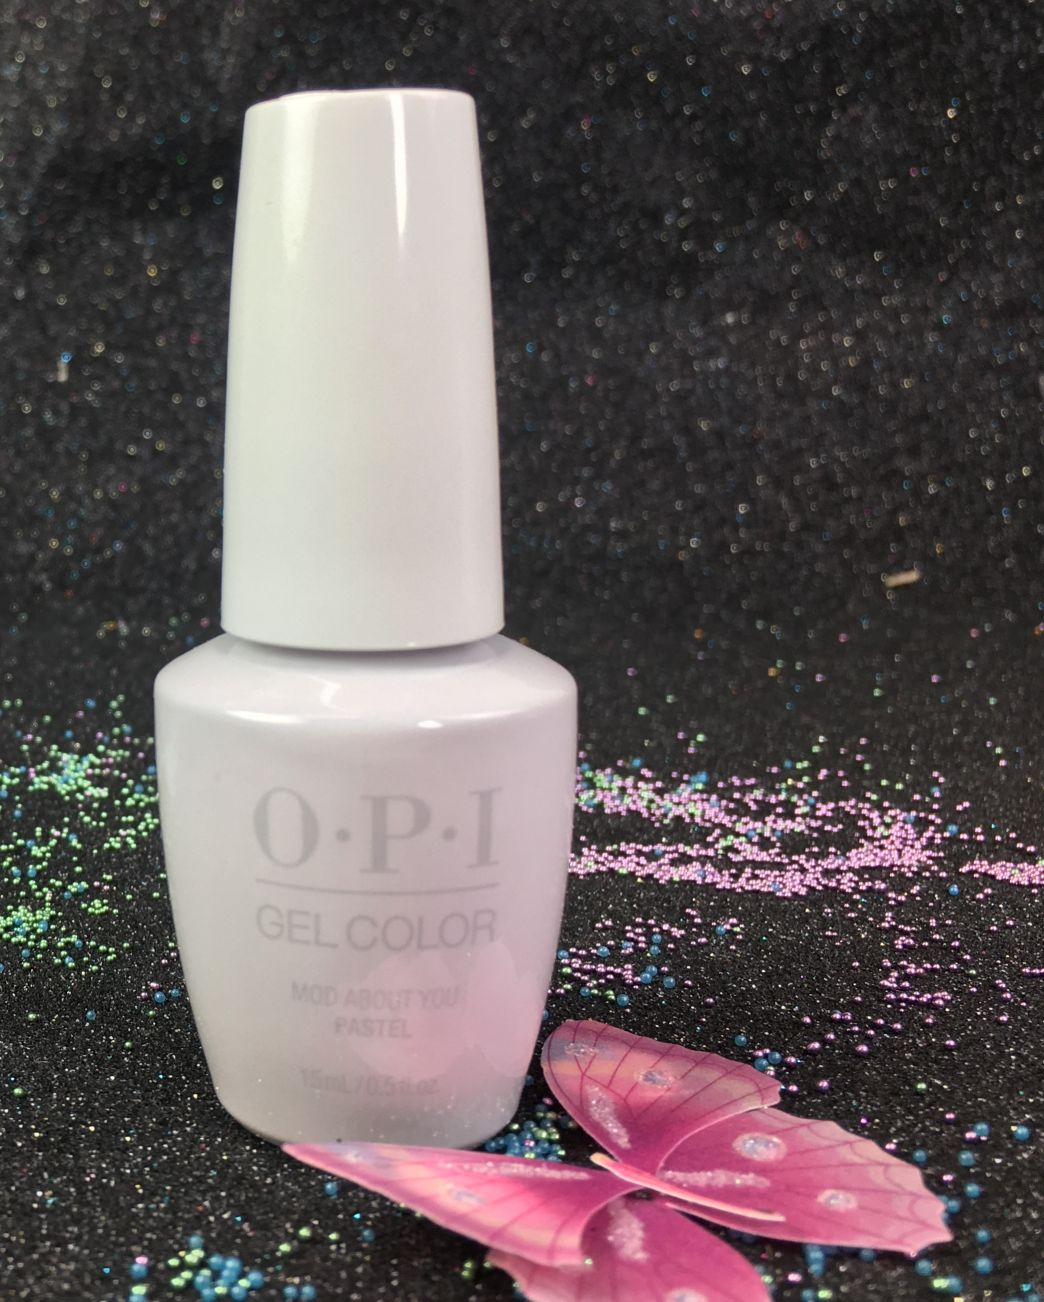 Collection #1 Password List Opi Mod About You Pastel Gelcolor New Look Gc106 15ml 5